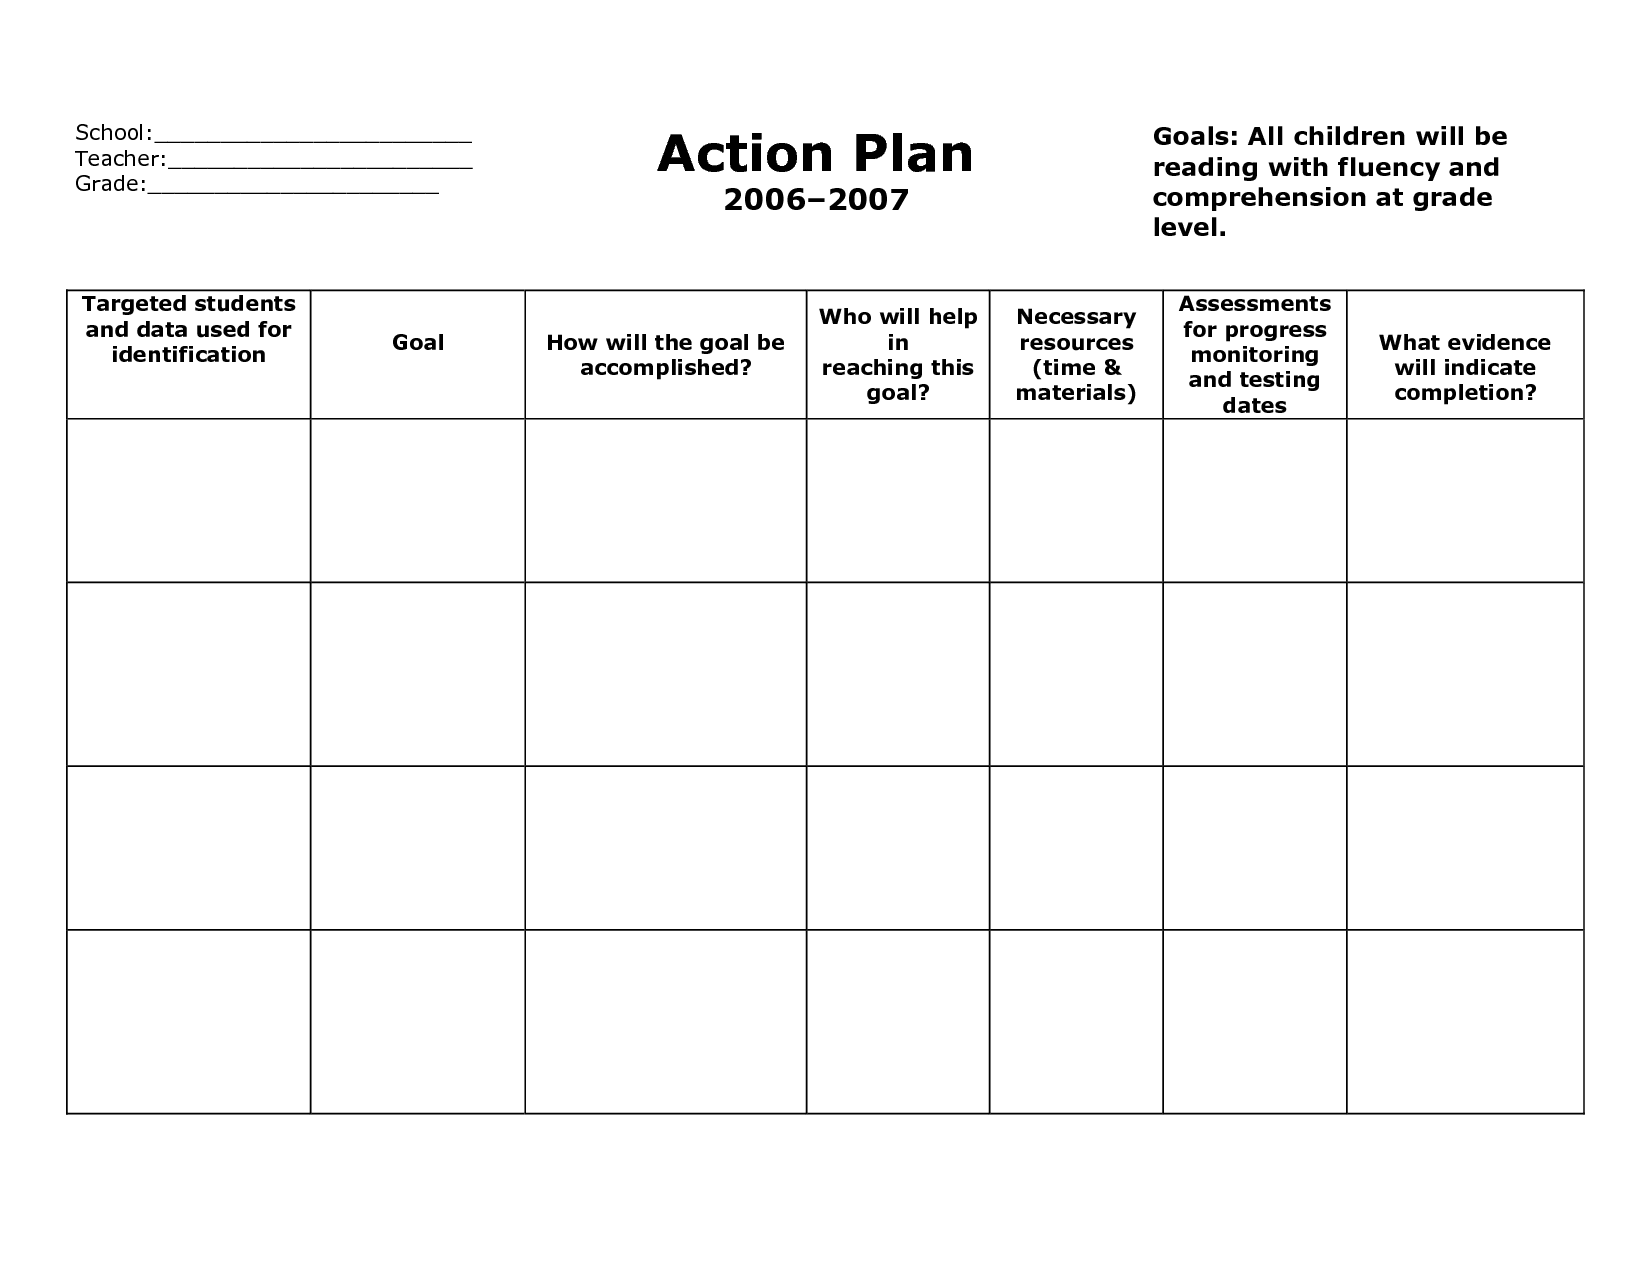 Action Plan Template Action Plan Format VFclyv  School Action